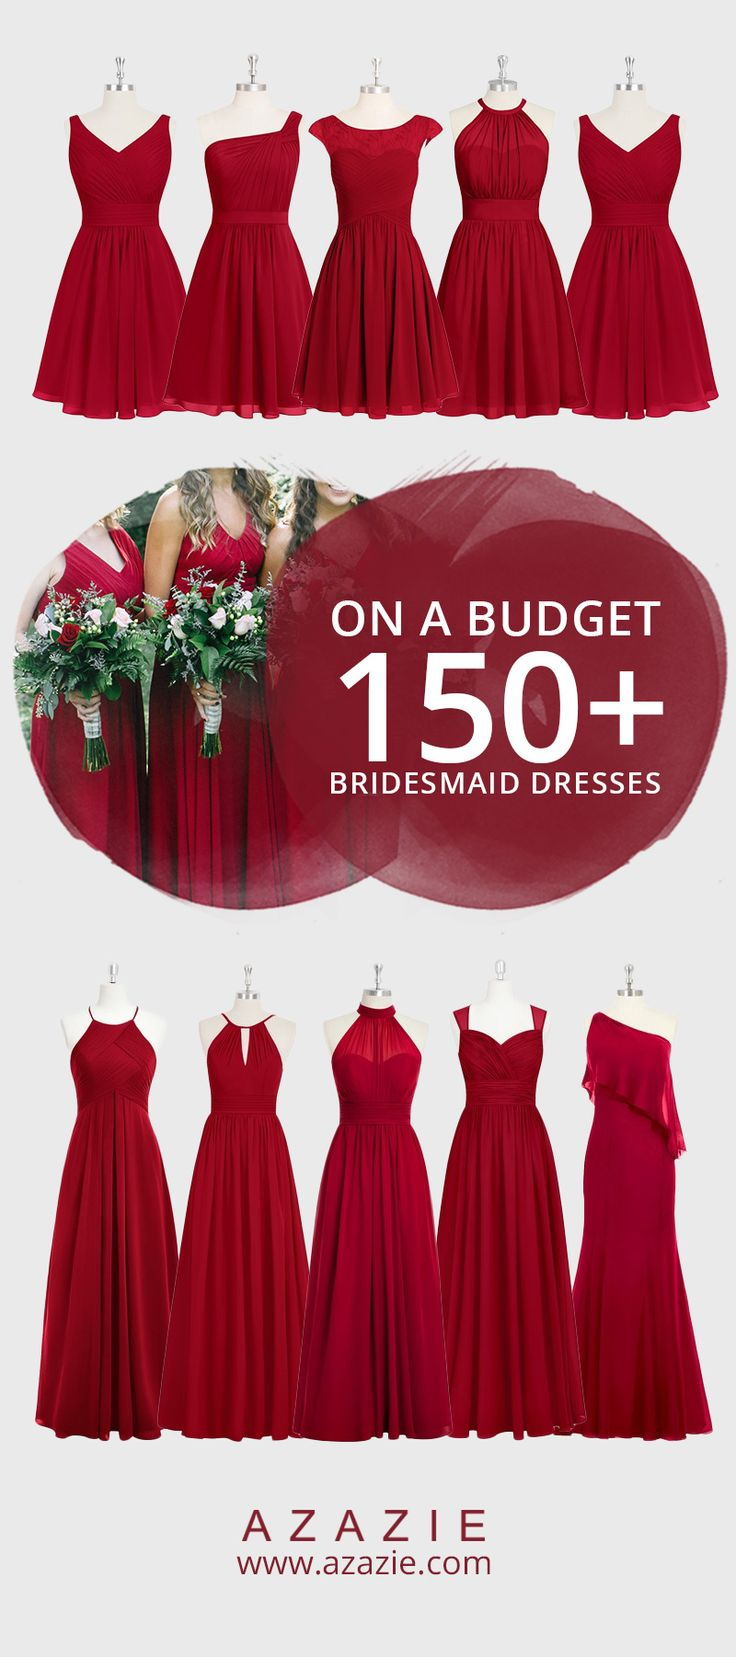 Attention Autumn brides! This beloved Burgundy is quite the popular shade for any Autumn themed wedding. Into the latest trends? Mix-and-match this classy shade of red by having your bridesmaids choose from 150+ of our dresses. Shopping for the perfect bridesmaid dress has never been more affordable either- all dresses are $150 or less!